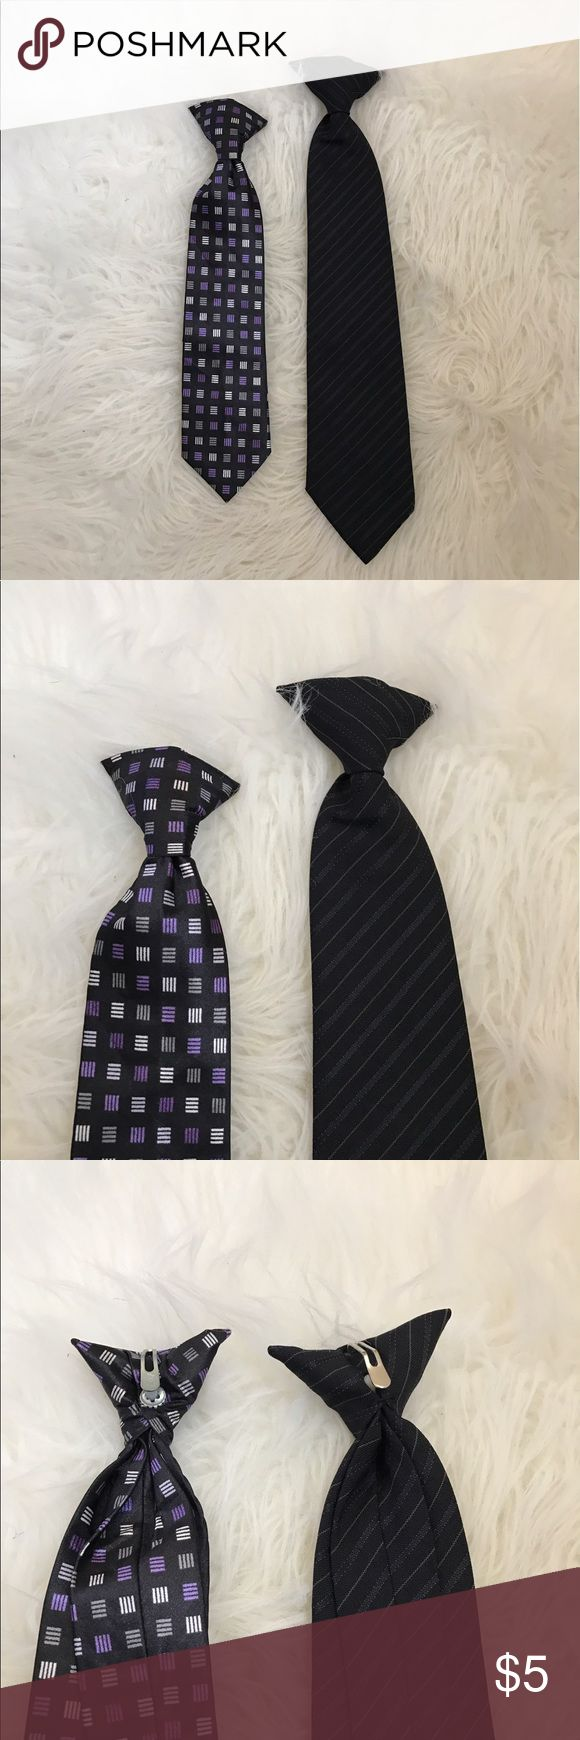 Set of boys clip on ties No flaws.good condition. Both are Clip ons. Accessories Ties